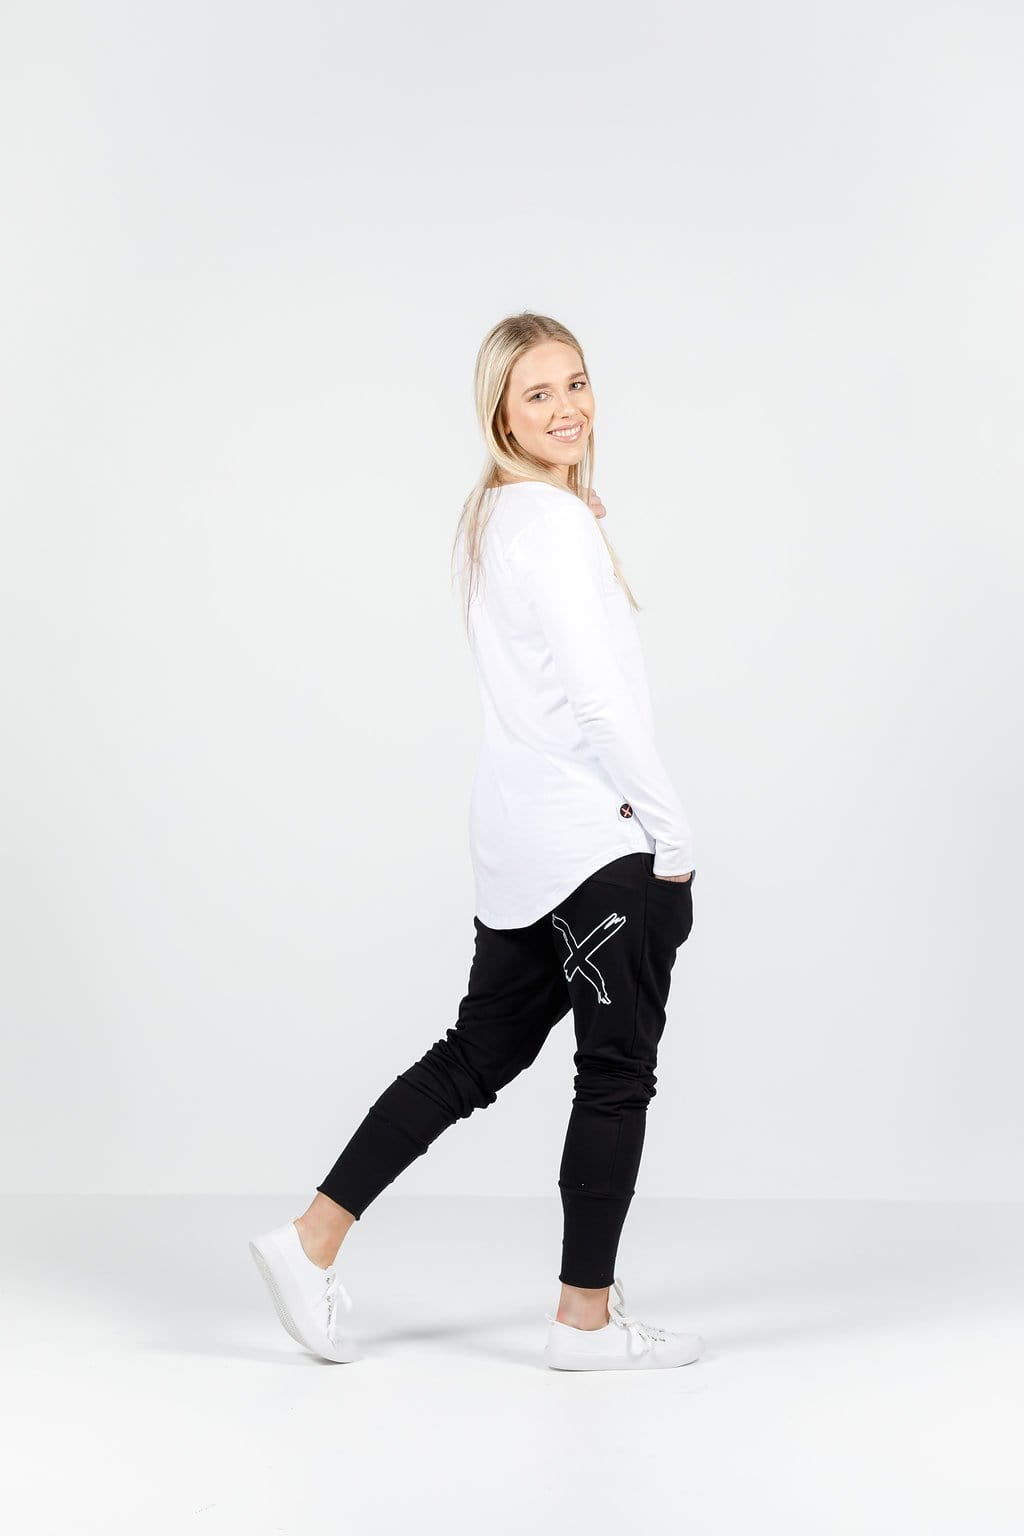 Home-Lee Apartment Pants - Black With White X - WINTER WEIGHT